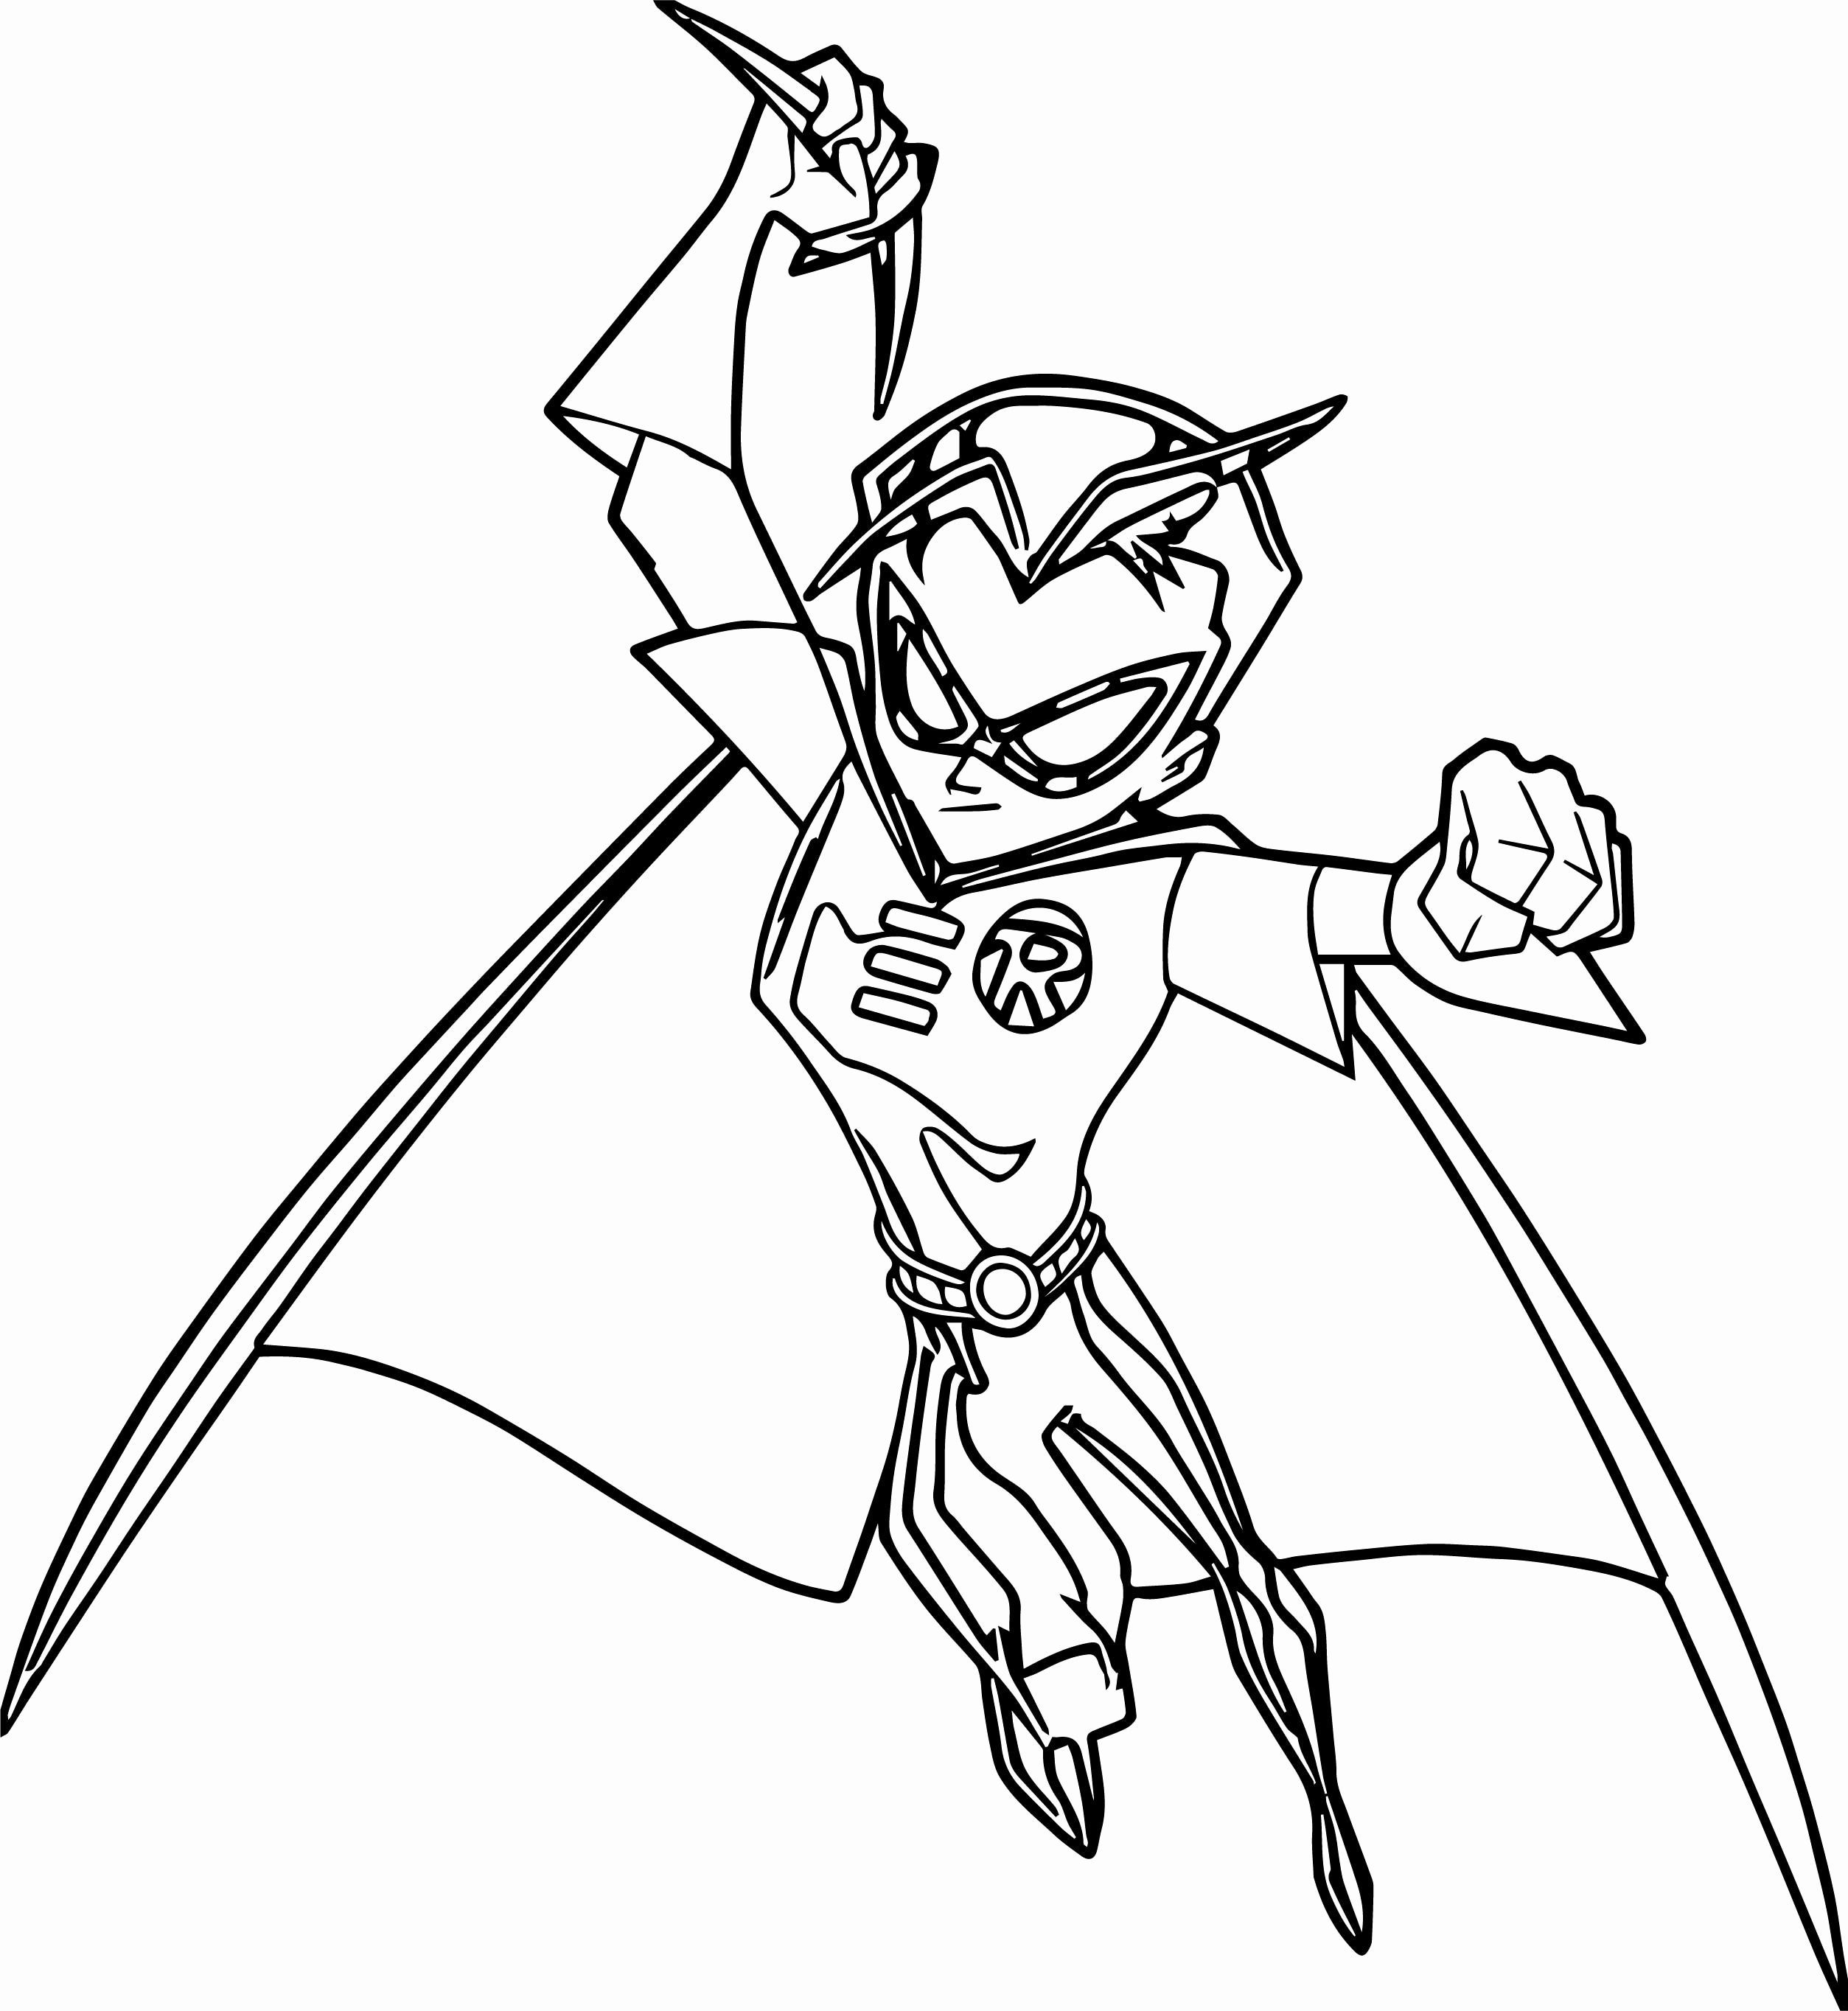 2507x2728 Inspiring Old Fashioned Red Robin Coloring Pages Image Collection